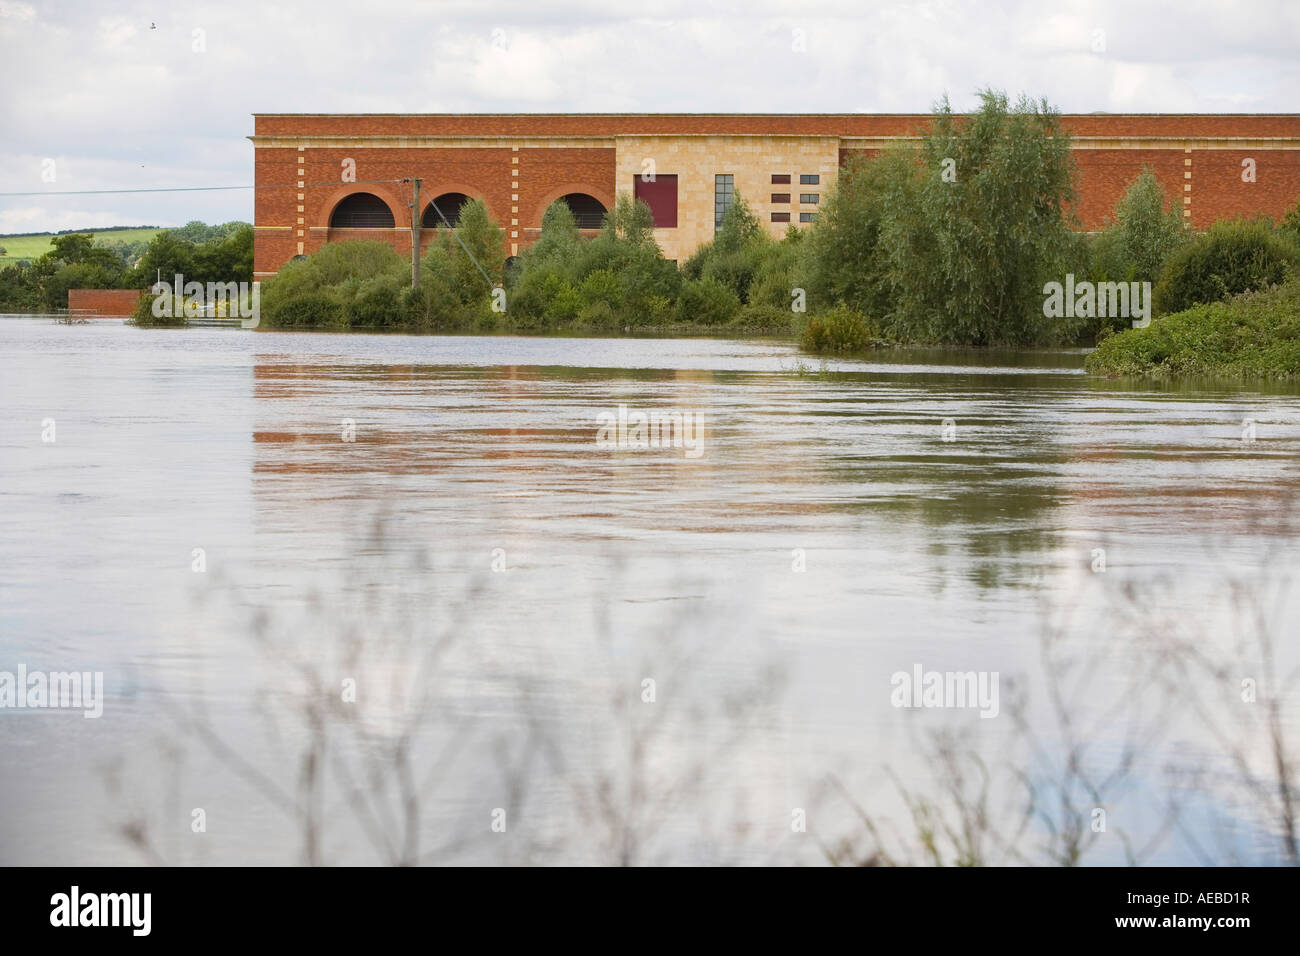 the flooded Myth water treatment plant in tewkesbury - Stock Image